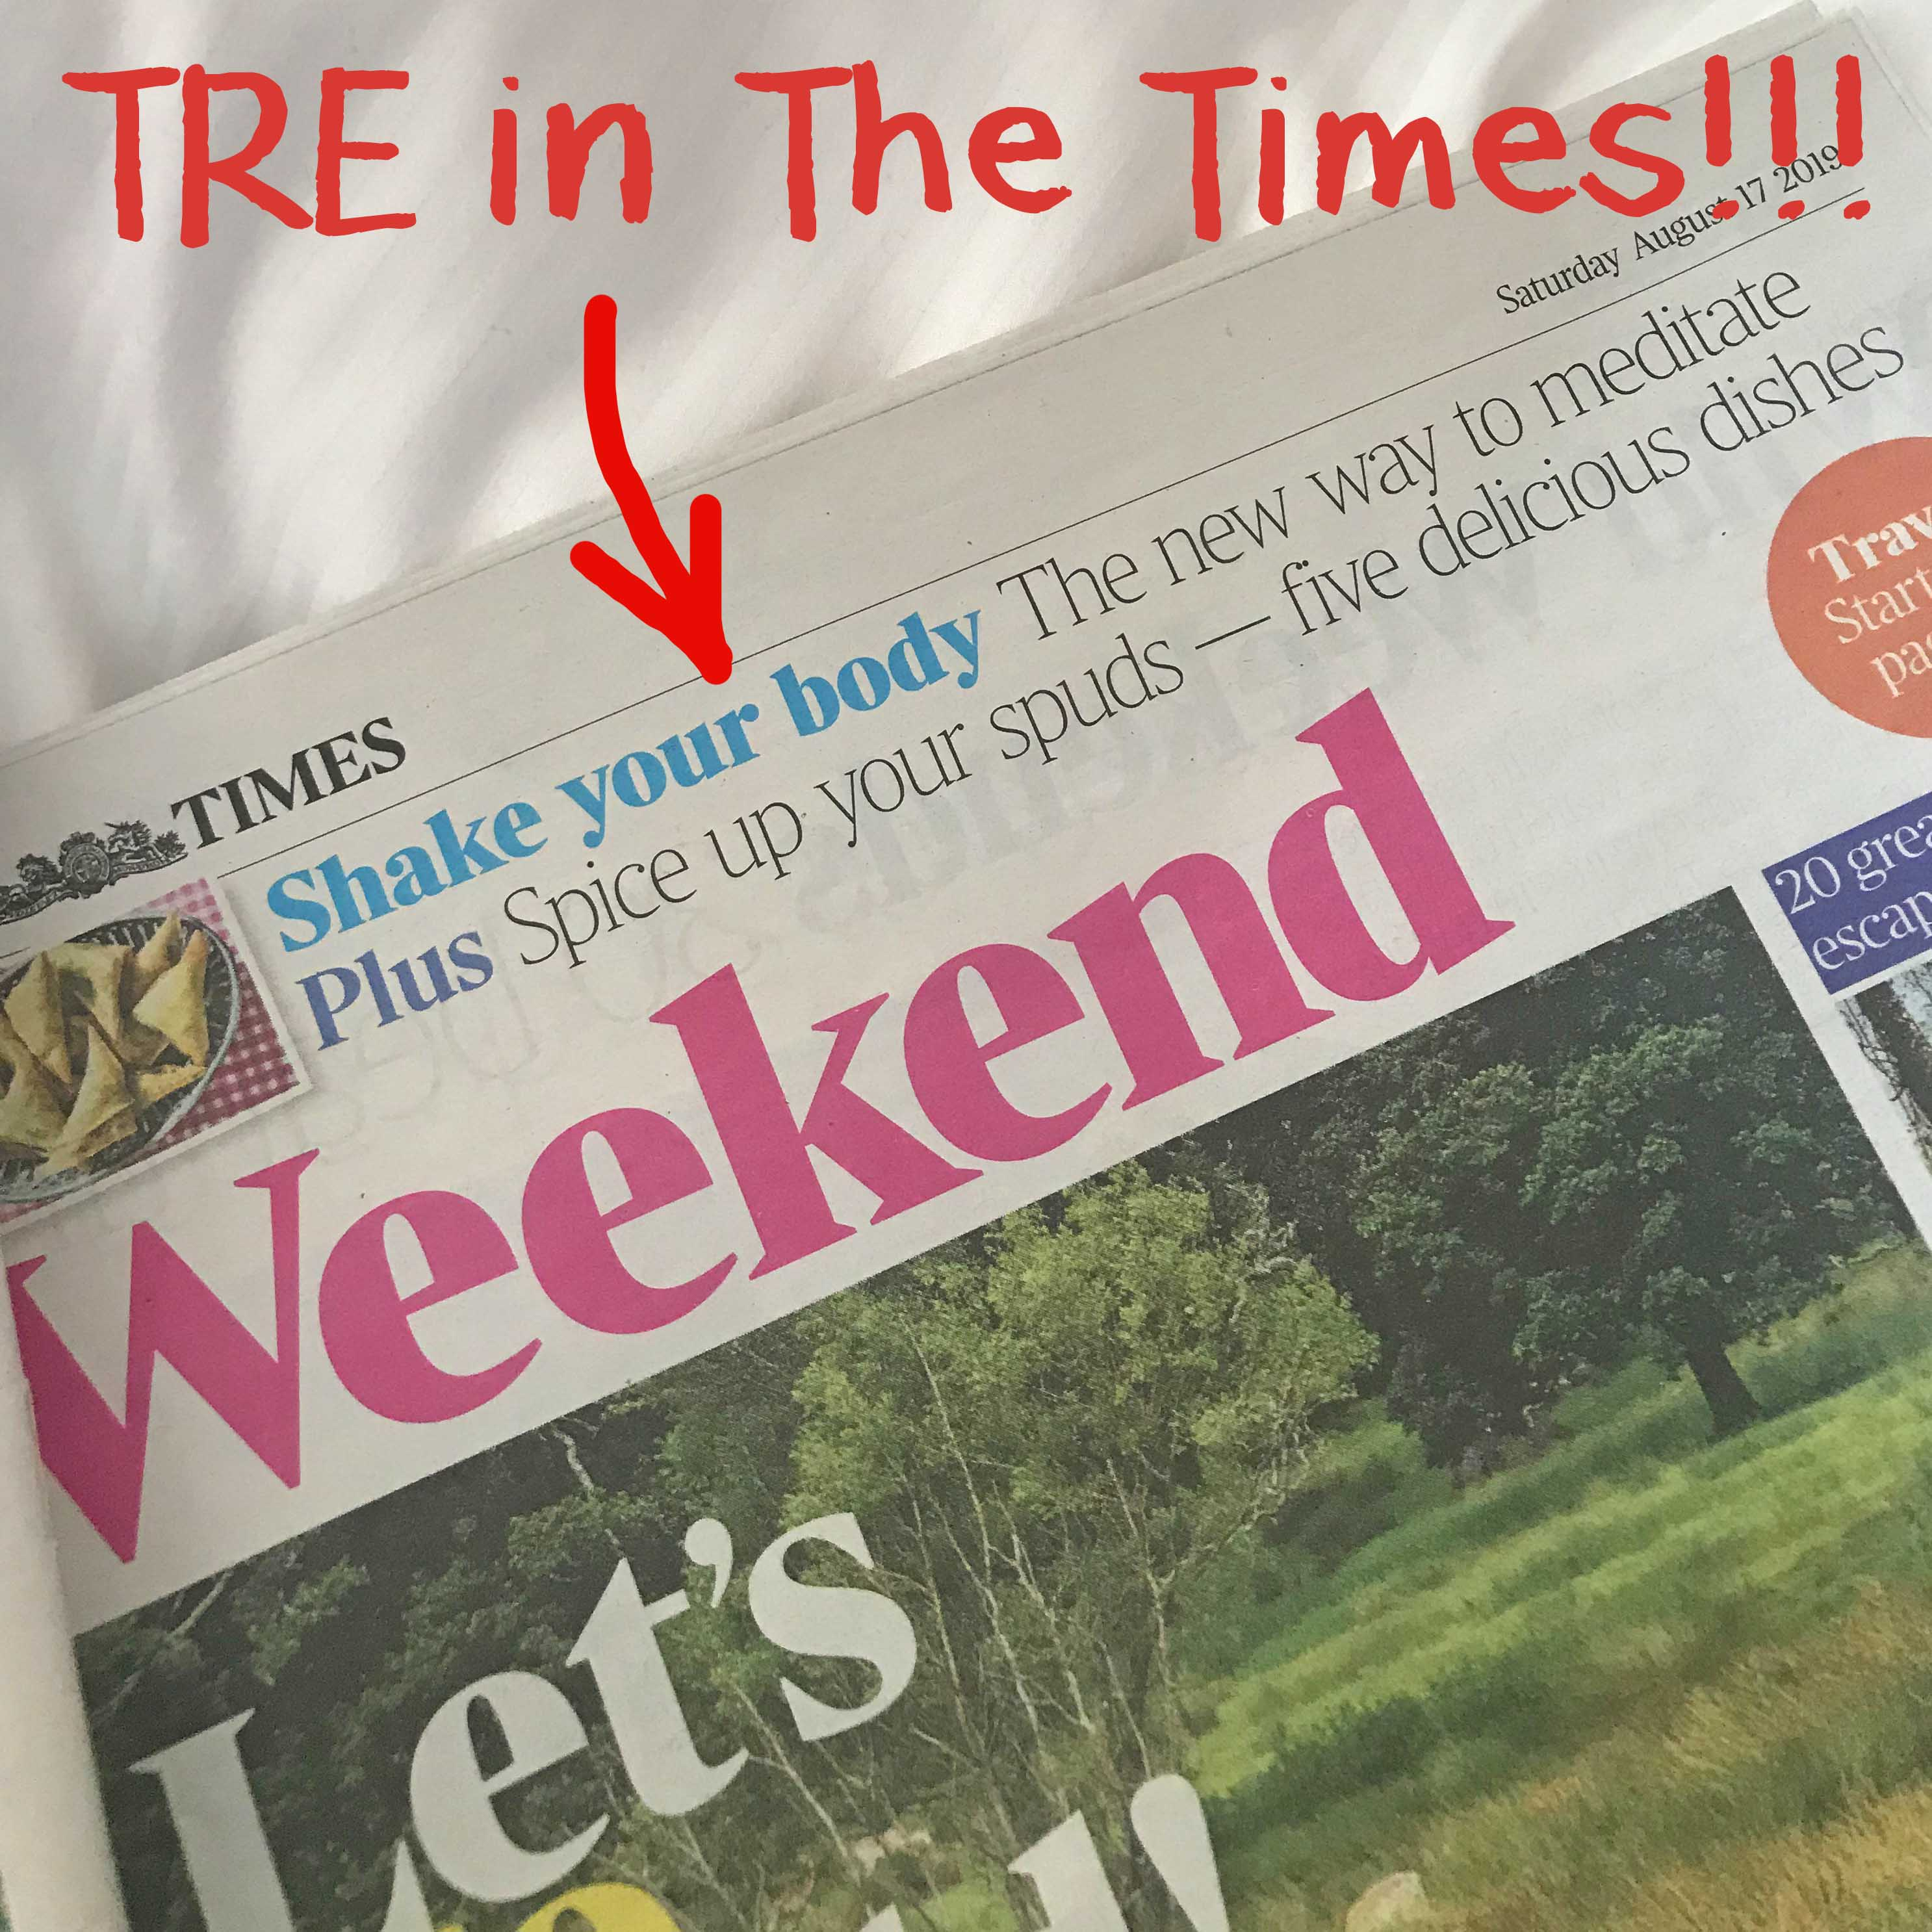 Too fidgety to meditate? Try TRE - TRE® article in The Times